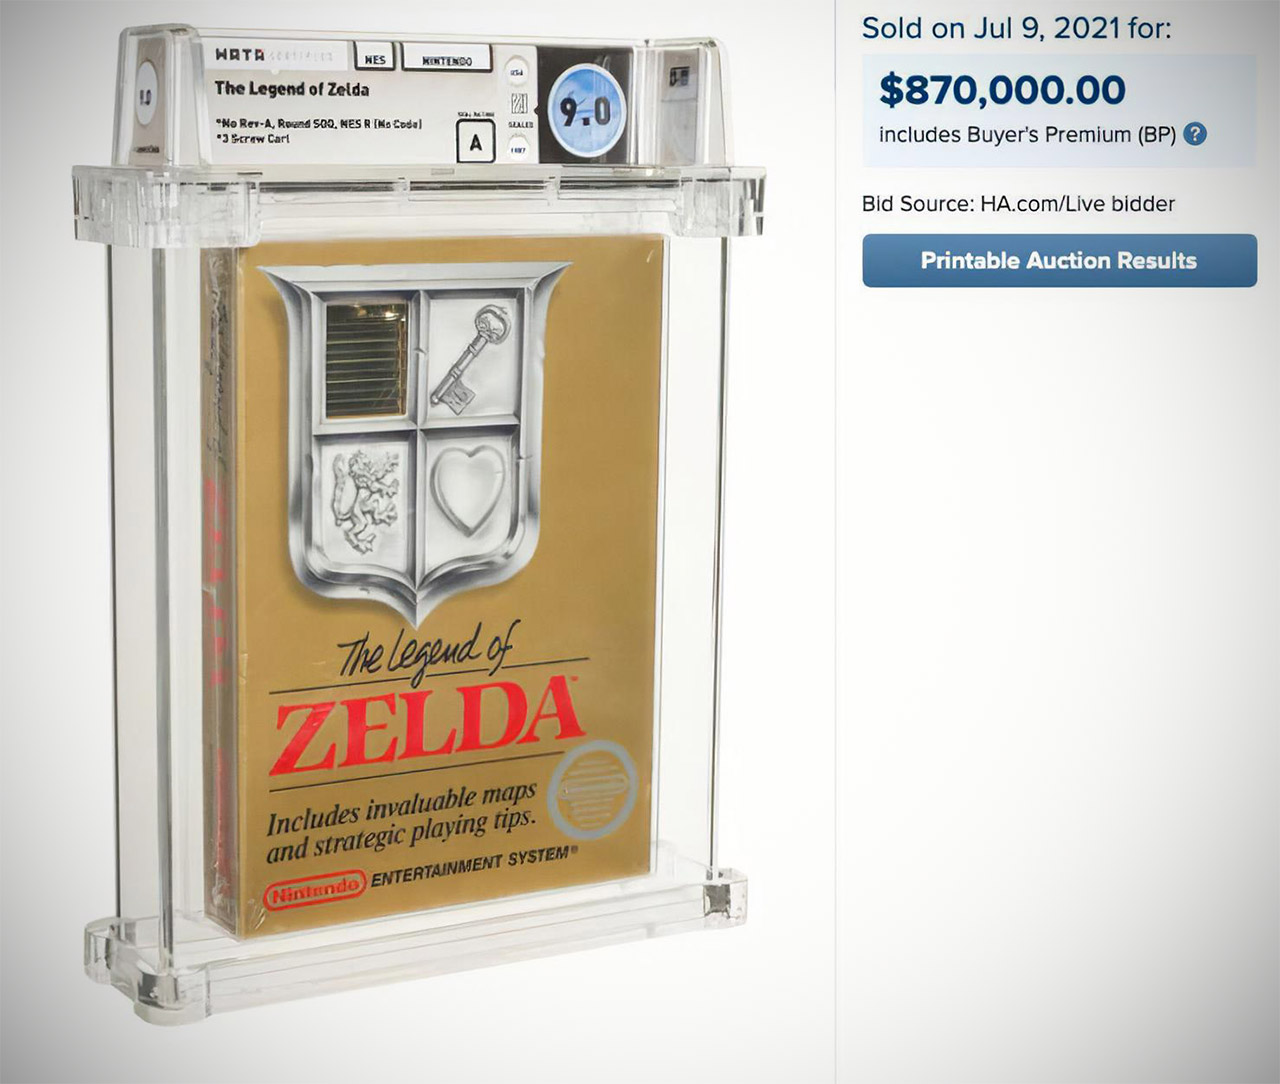 Heritage Auctions The Legend of Zelda Nintendo Entertainment System Game Record Sale